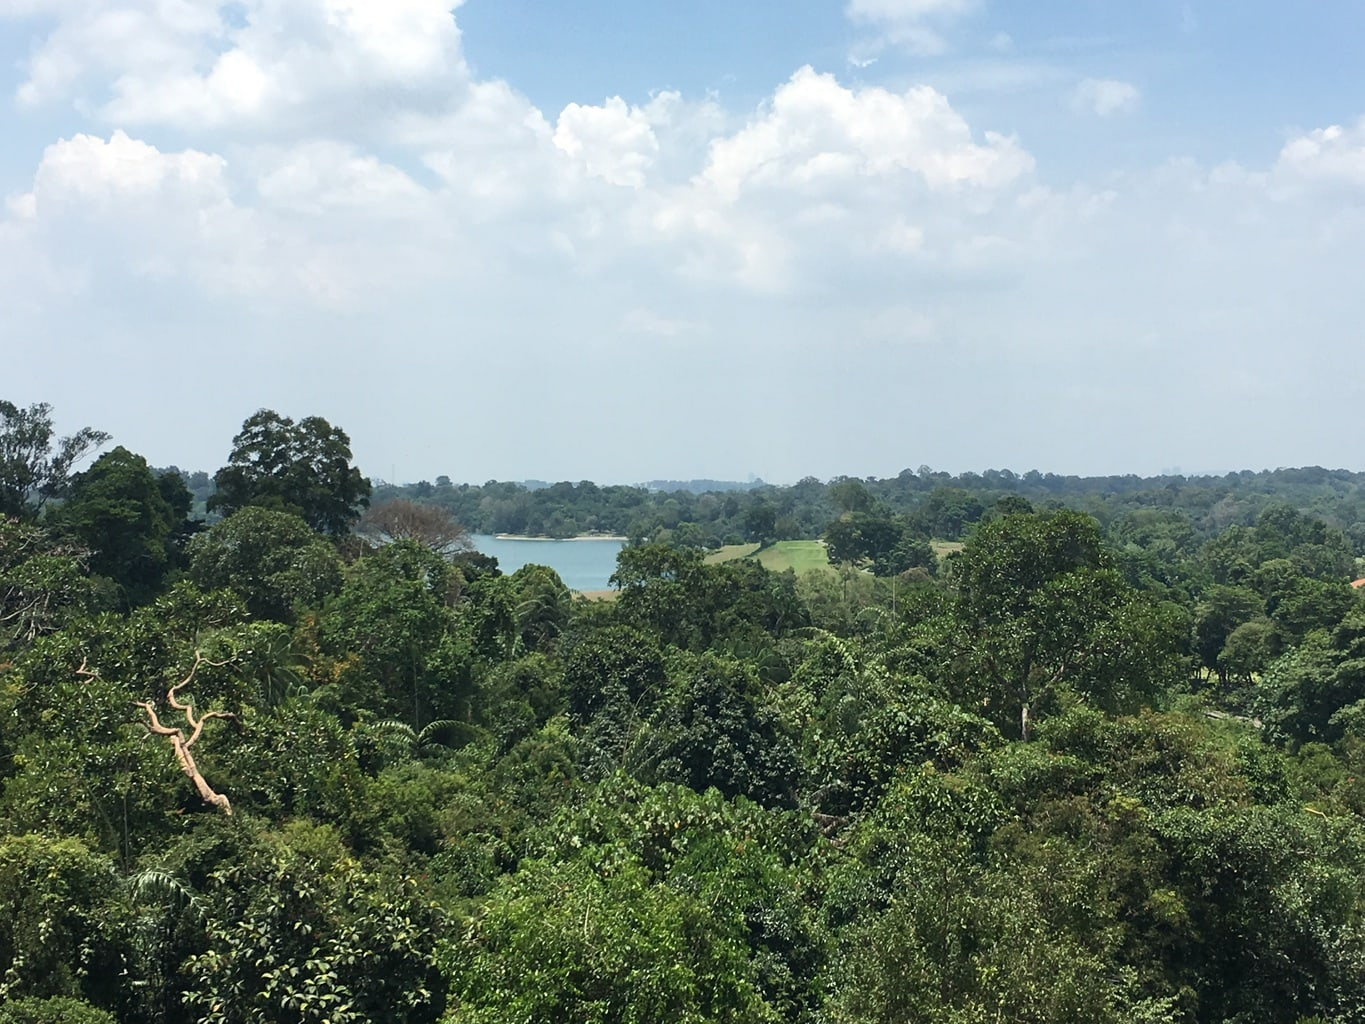 View from MacRitchie suspended bridge